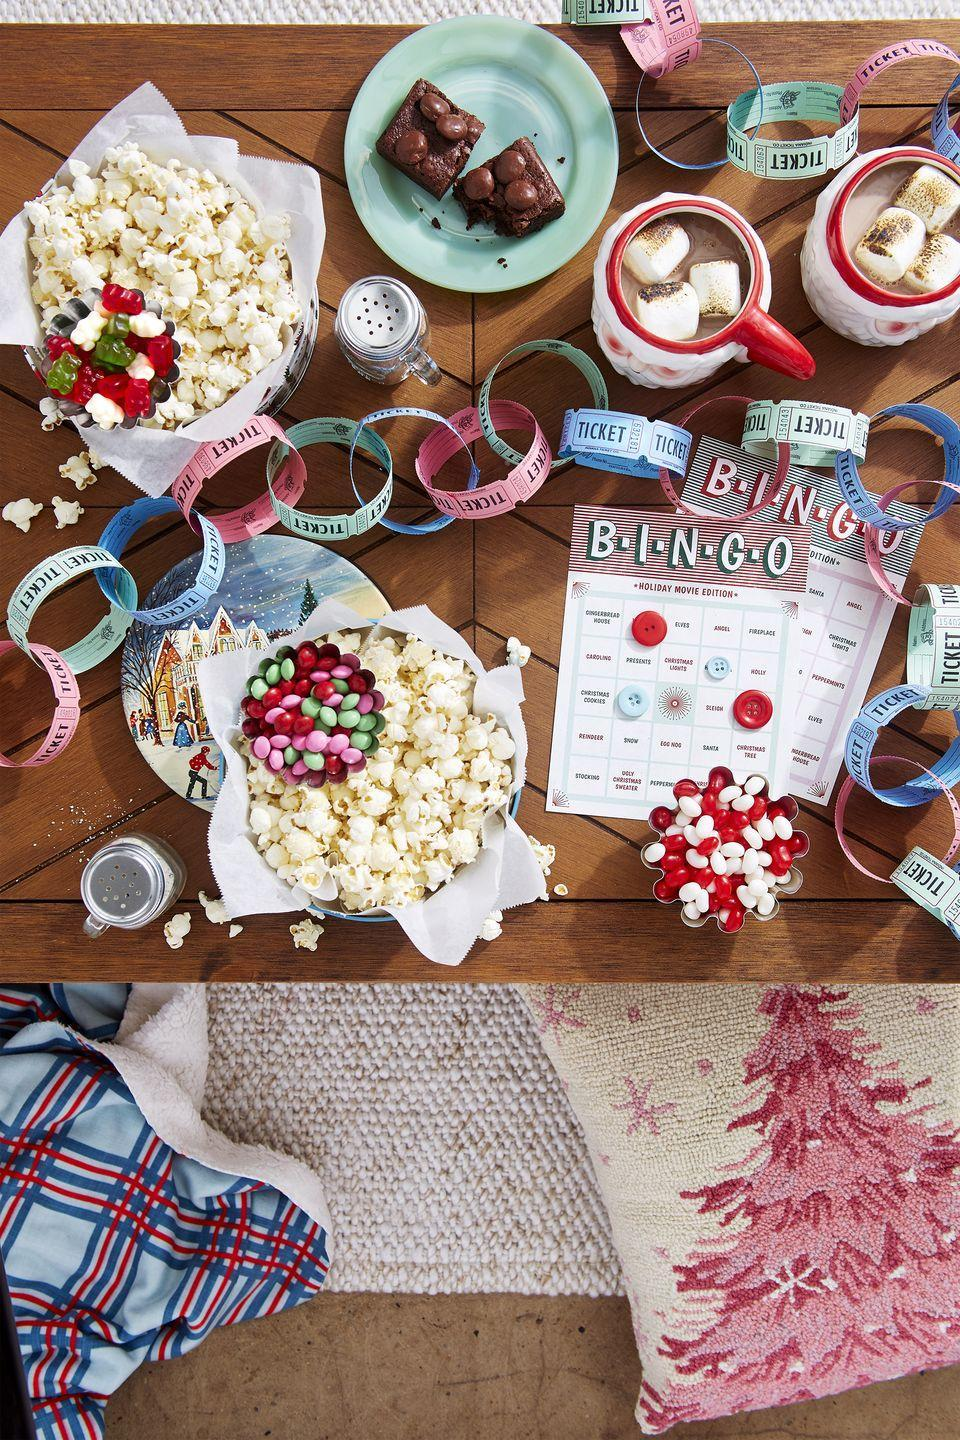 """<p>Build a fire, curl up with your family and friends, and get in the spirit of Christmas with your <a href=""""https://www.countryliving.com/life/entertainment/g5034/top-christmas-movies/"""" rel=""""nofollow noopener"""" target=""""_blank"""" data-ylk=""""slk:favorite holiday classics"""" class=""""link rapid-noclick-resp"""">favorite holiday classics</a>, like <em>The Polar Express</em>, <em>Home Alone</em>, and <em>Miracle on 34th Street</em>. Serve fresh popcorn with optional popcorn seasonings like parmesan black pepper, cinnamon sugar, or everything bagel for a holiday treat. Don't forget the toasted marshmallow hot cocoa and the theatre candy brownies. To make things extra fun, ask guests to play <a href=""""https://www.countryliving.com/life/entertainment/a34555161/christmas-bingo/"""" rel=""""nofollow noopener"""" target=""""_blank"""" data-ylk=""""slk:Binge-Watch Bingo"""" class=""""link rapid-noclick-resp"""">Binge-Watch Bingo</a> using buttons or popcorn to mark the squares.</p>"""